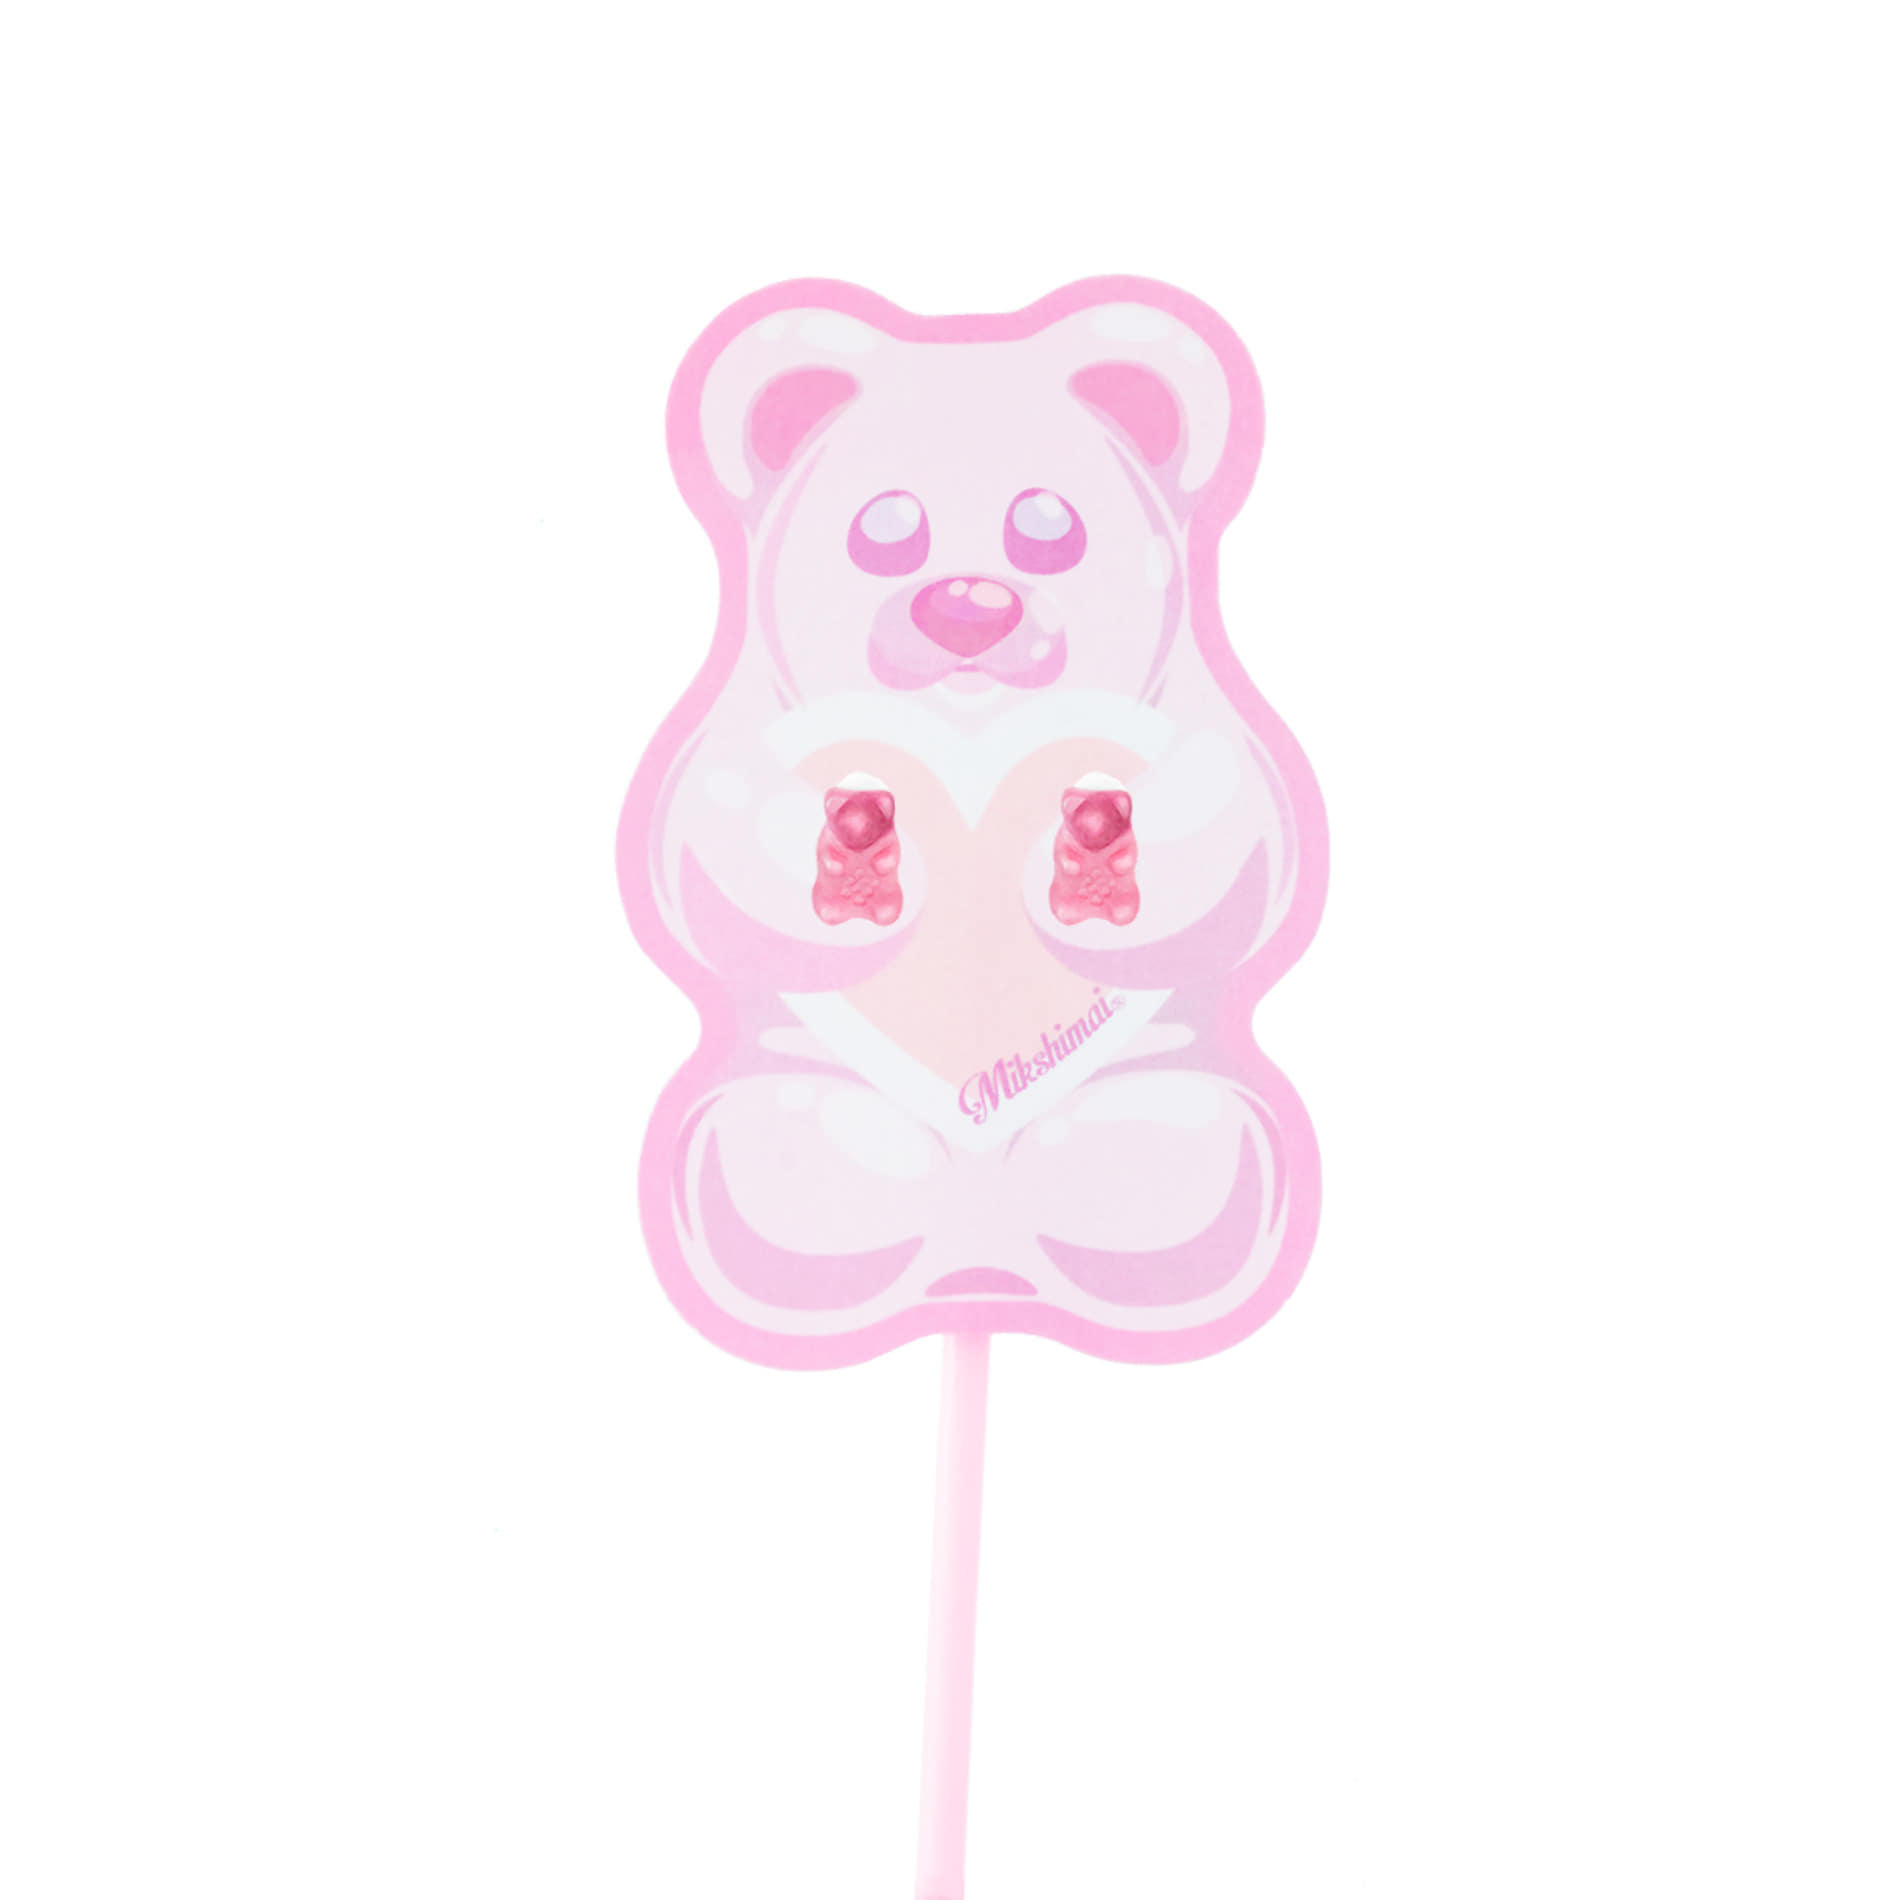 JELLY BEAR STUD EARRINGS (PINK)